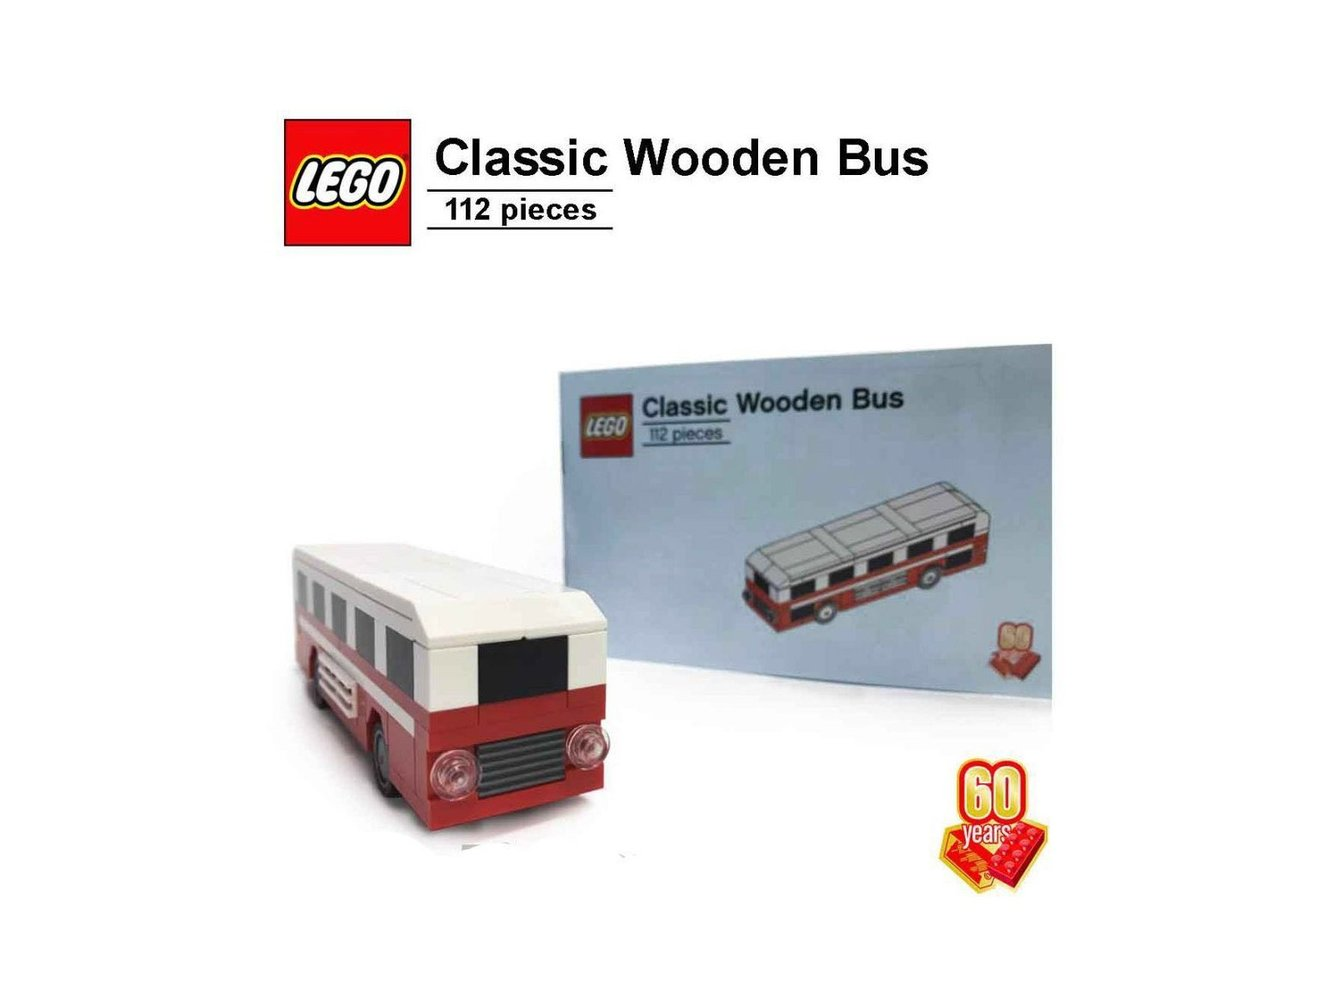 60th Anniversary Classic Wooden Bus